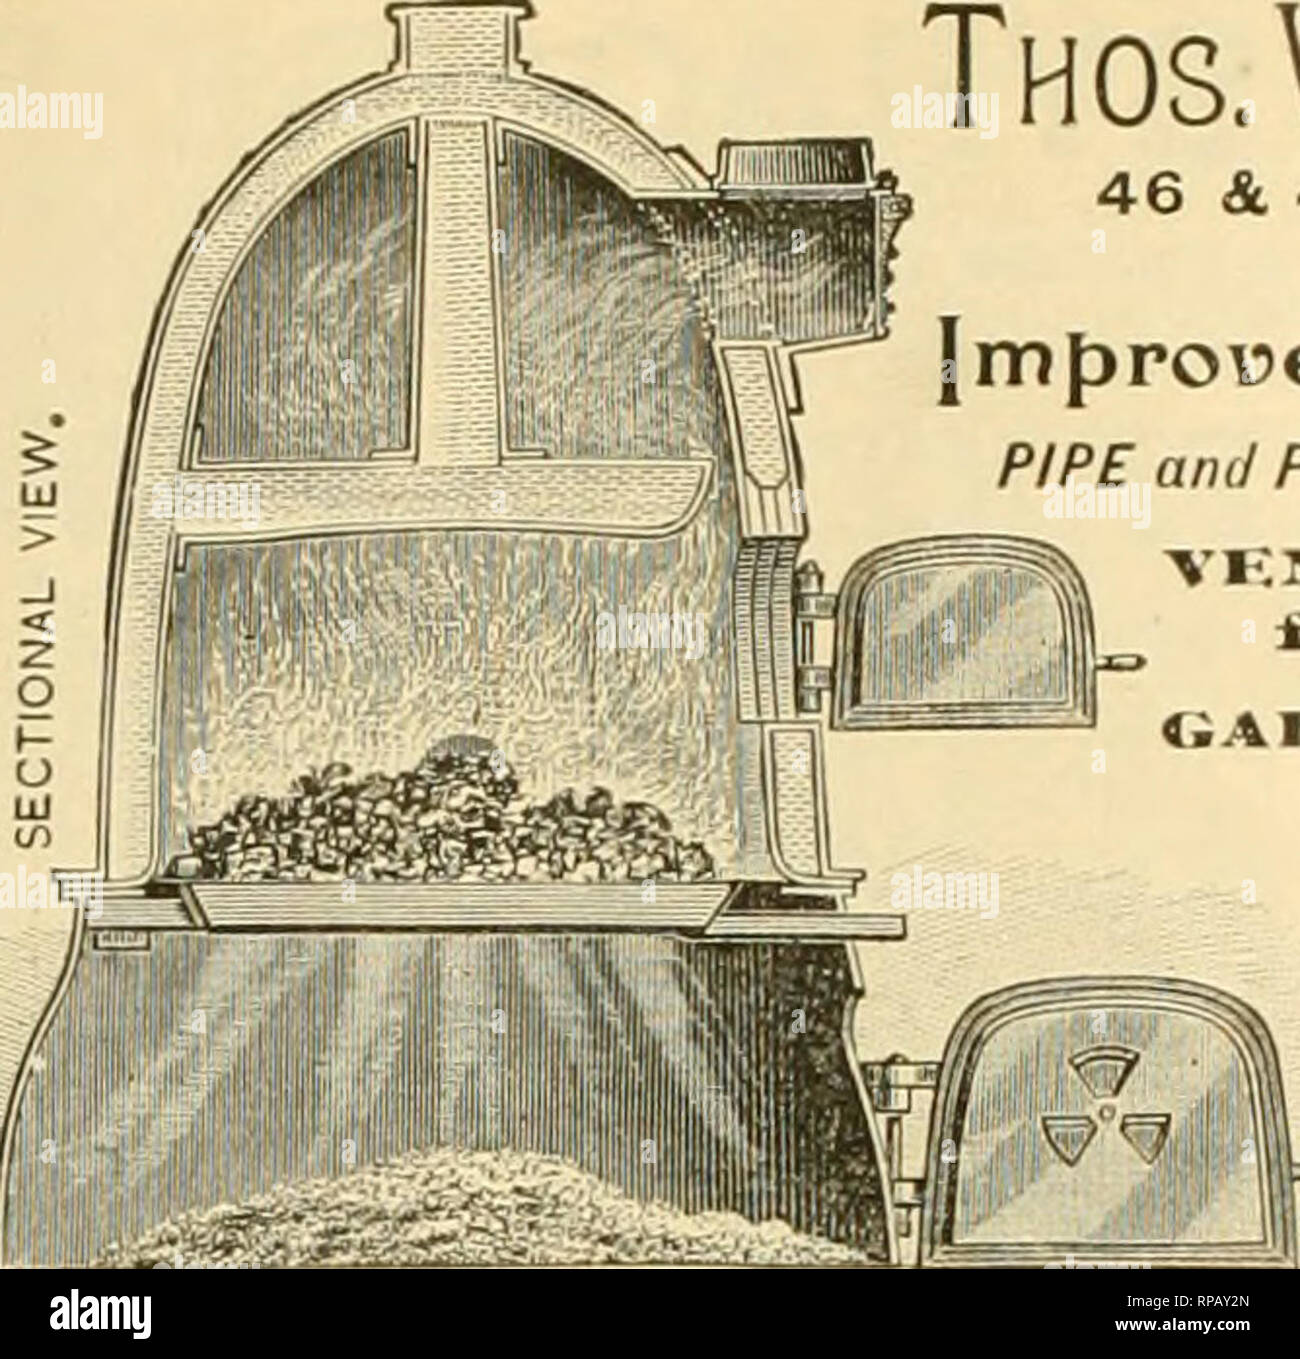 """. The American florist : a weekly journal for the trade. Floriculture; Florists. A CARMODY BOILER Will Cost less, I'se less Fuel, and has more advantages than any other Biiler in the market. B^"""" Seuii for Ue8. OA.iiJMorj^v', EVANSVILLE, IND. il' . _• -ft^,s£iii£Si A til,. Vt-nlilm i«liv«*r»'i] Thos. W.Weathered'S Sons, 46 &. 48 MARION STREET. NEW YORK. MANUFACTURERS OF Improued ^oilers (si.«kinK orates). PIPE and PIPE FITTINGS, for heating Greenhouses, &c VF.isTii..*'rirVIRe for Trellis WorU. • ALSO • ^opticultupal® l^uildeps. Conservatories, Greenhouses, &c.. Erected in any p - Stock Image"""